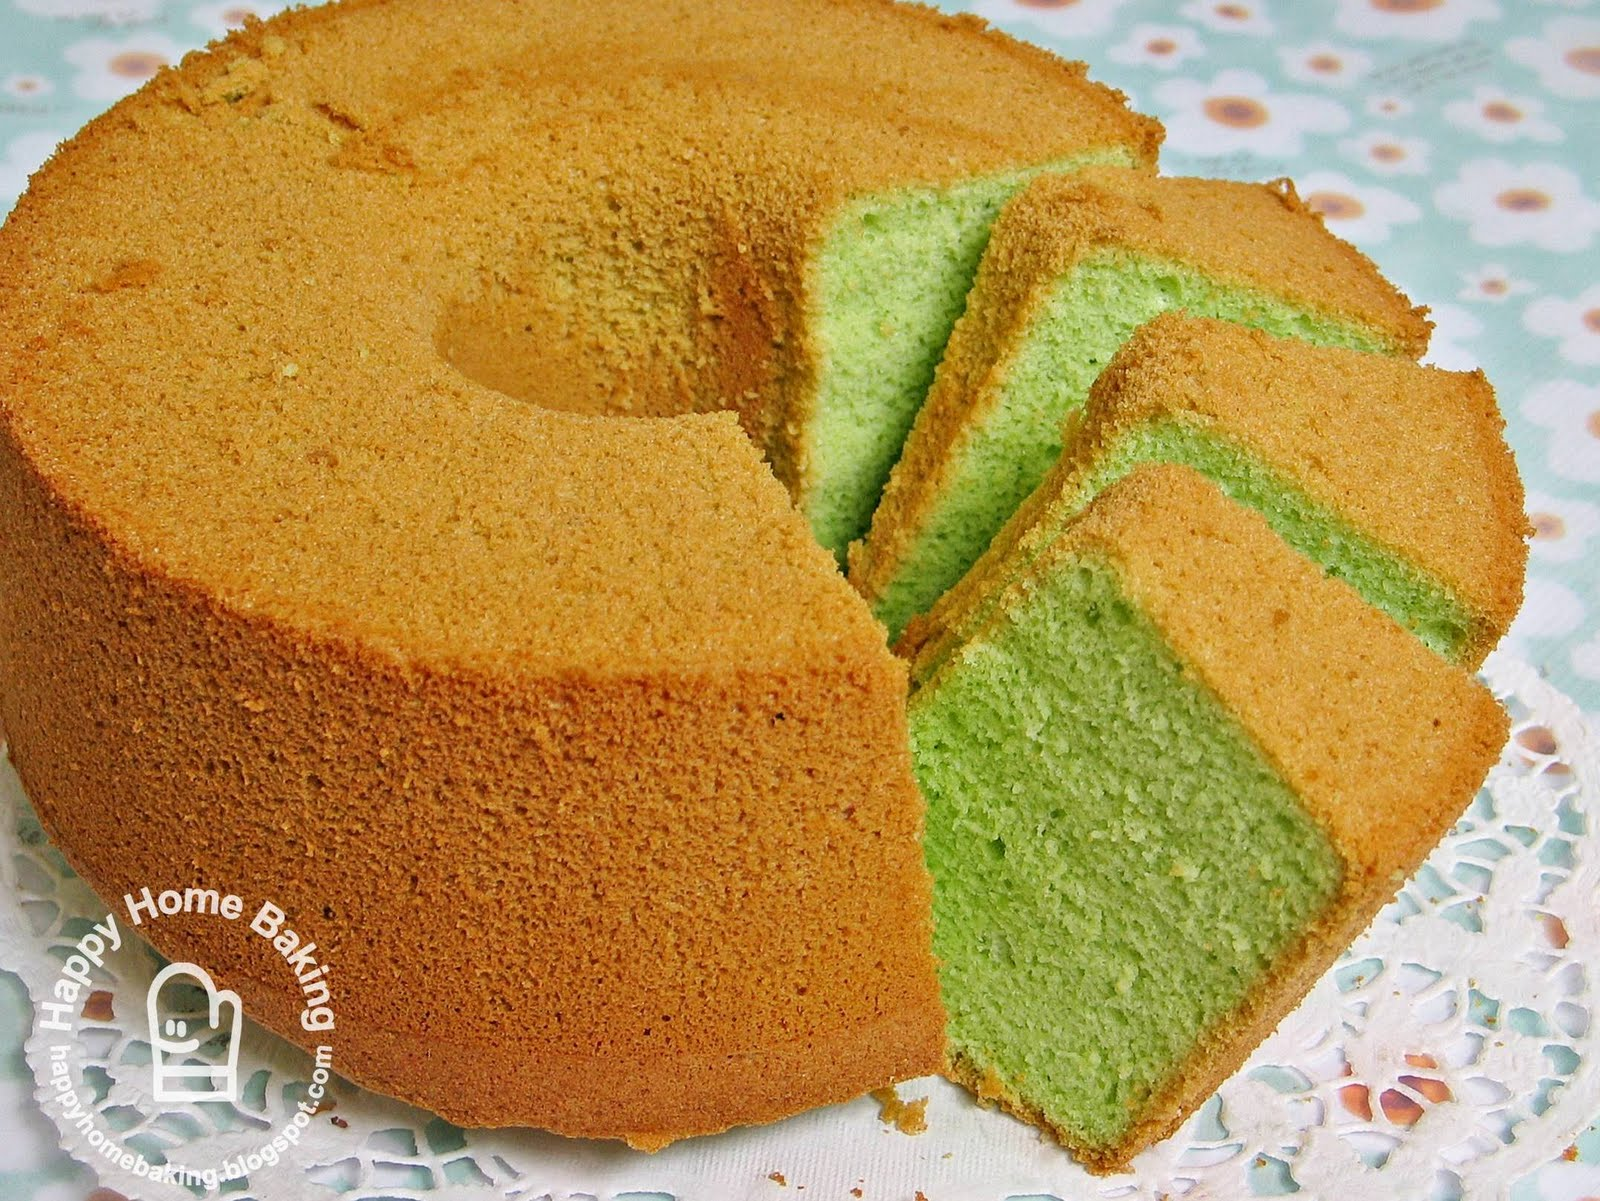 Baking Chiffon Cake In Parchment